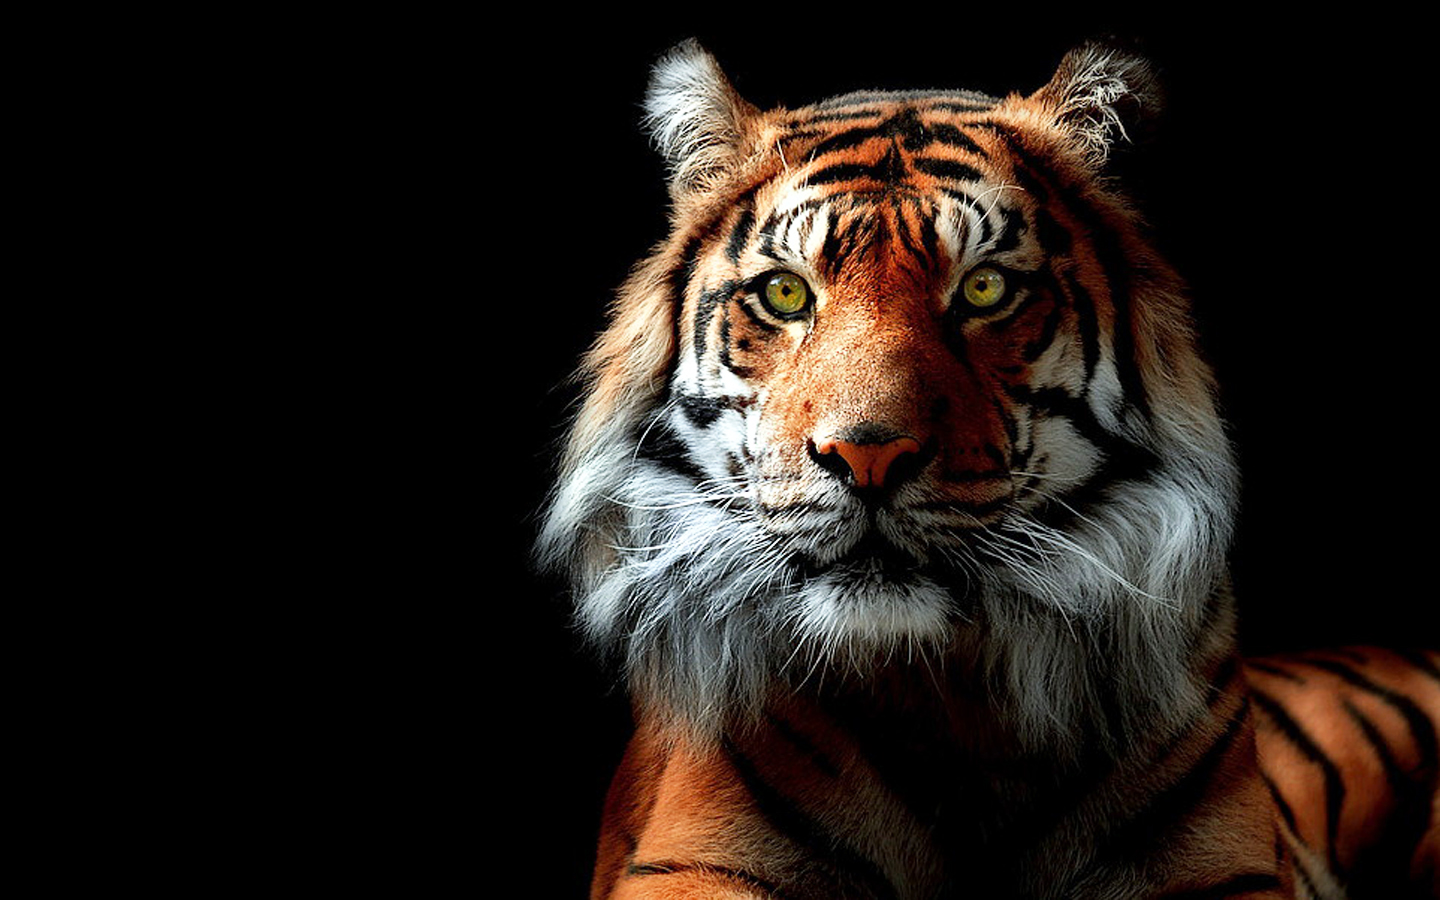 Tiger HD Wallpapers | HD Wallpapers